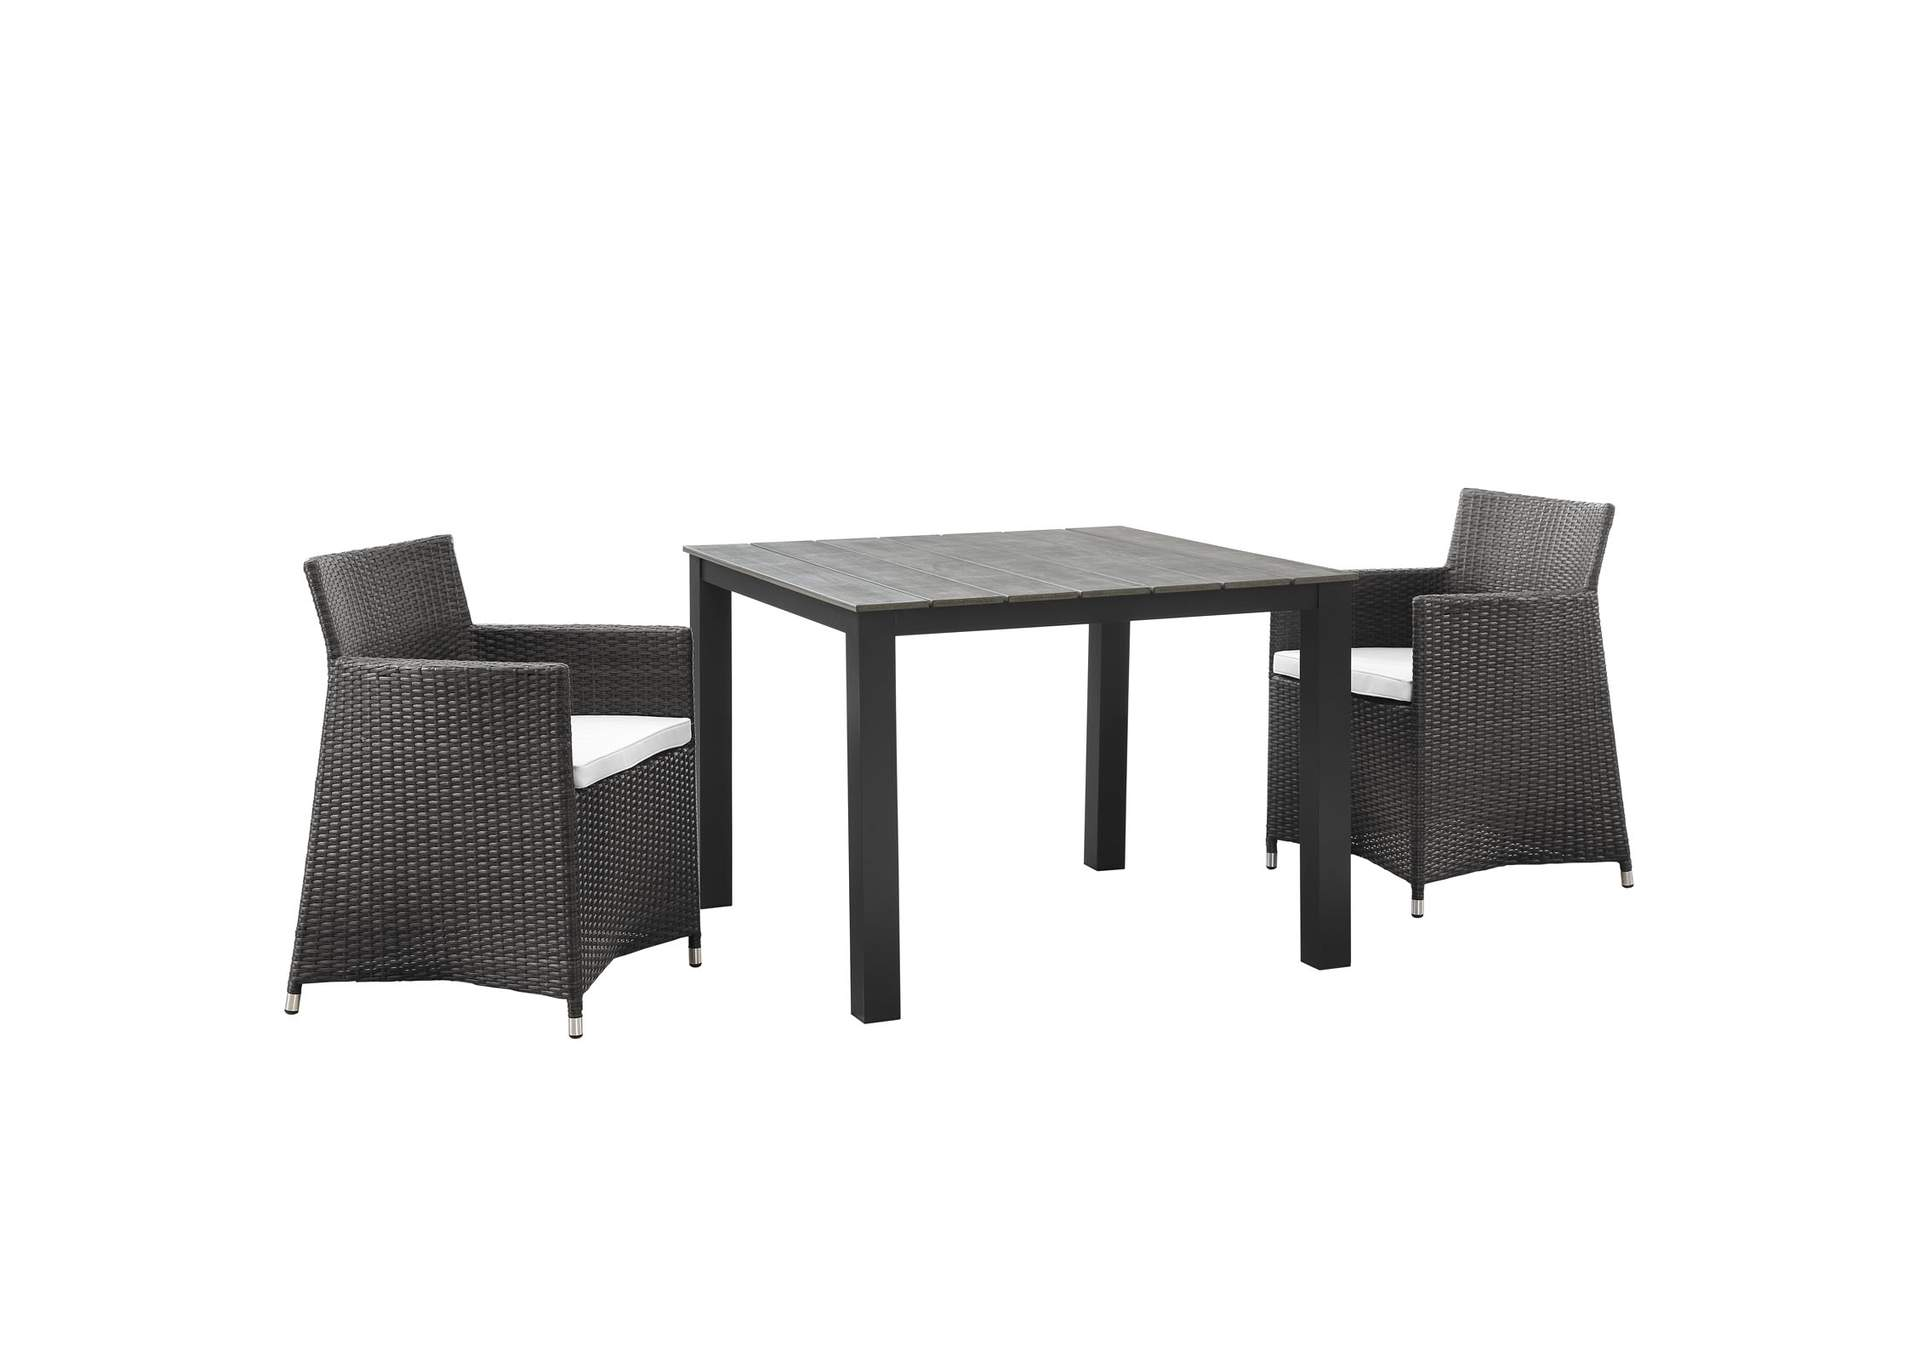 Junction Brown White 3 Piece Outdoor Patio Wicker Dining Set,Modway